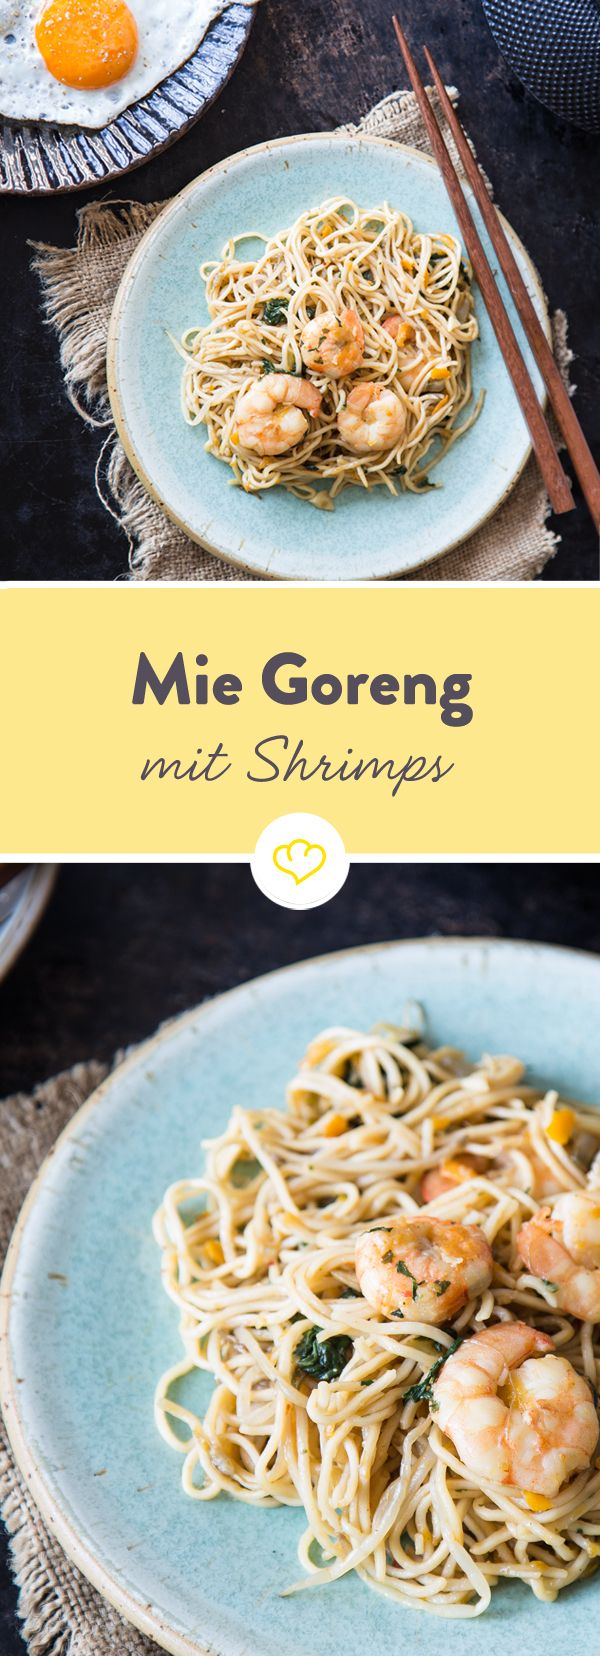 Photo of Mie Goreng with shrimp – fried noodles in Indonesian